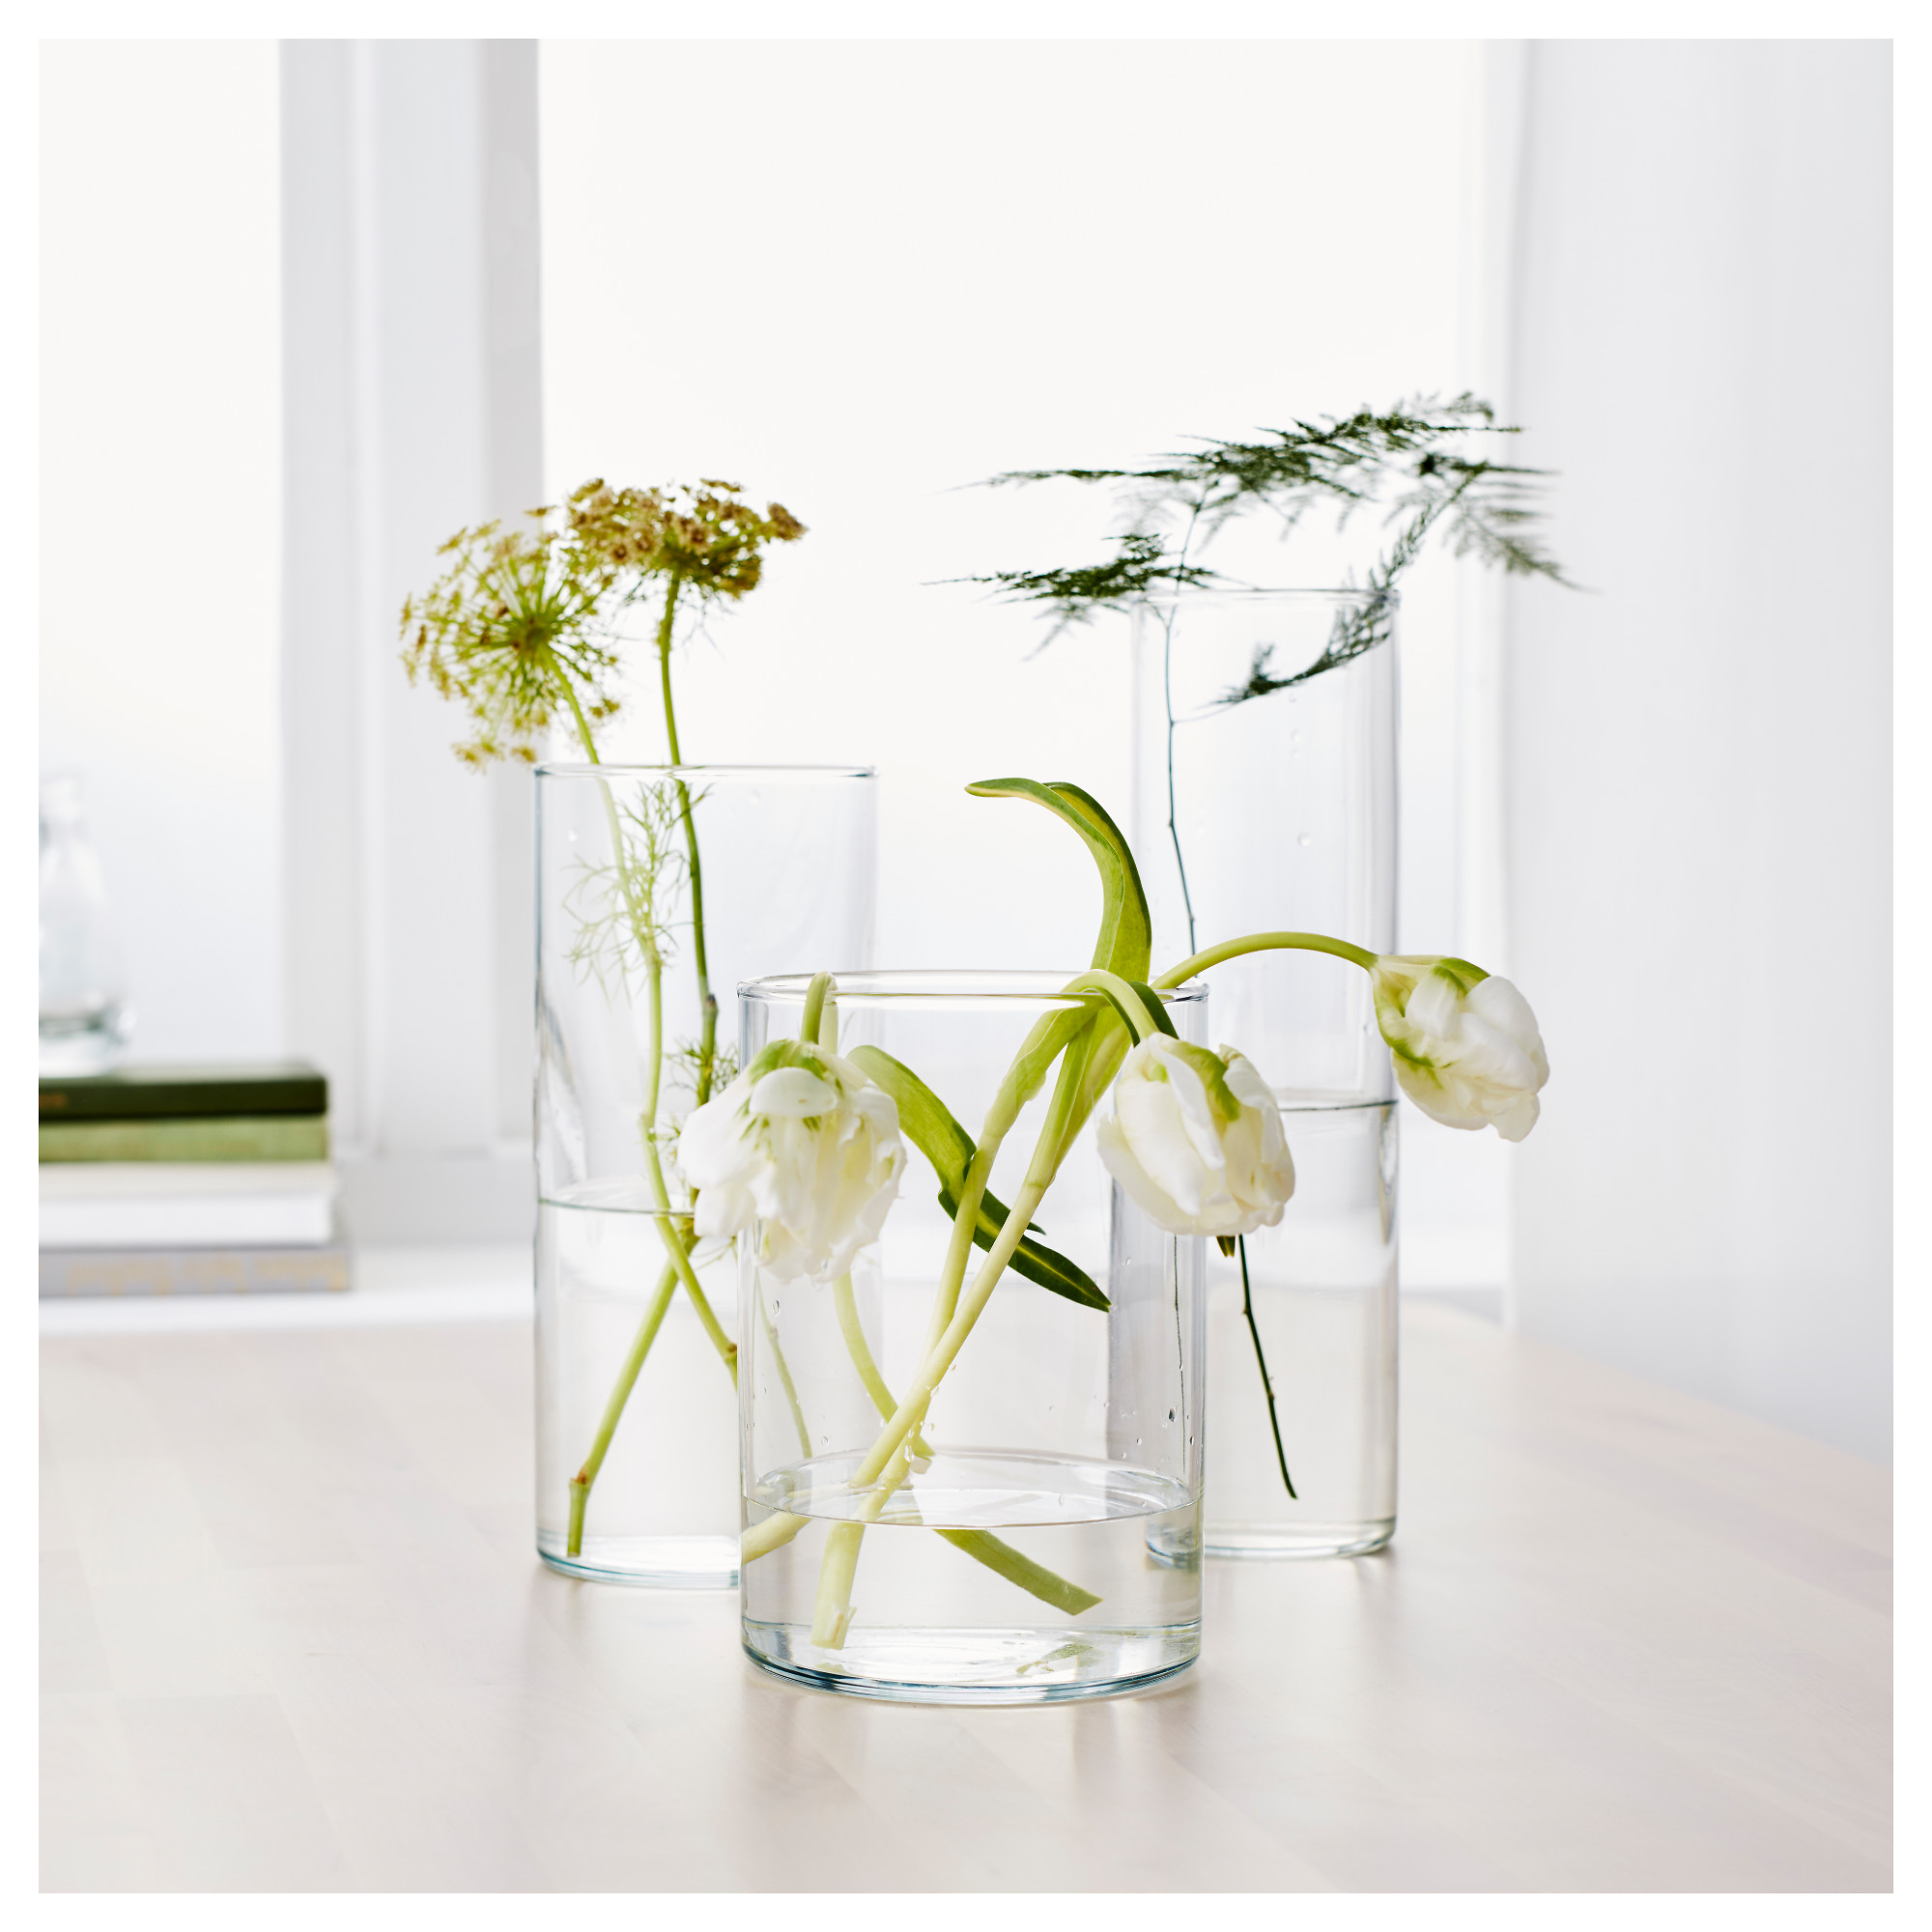 Cylinder vase set of 3 ikea floridaeventfo Image collections